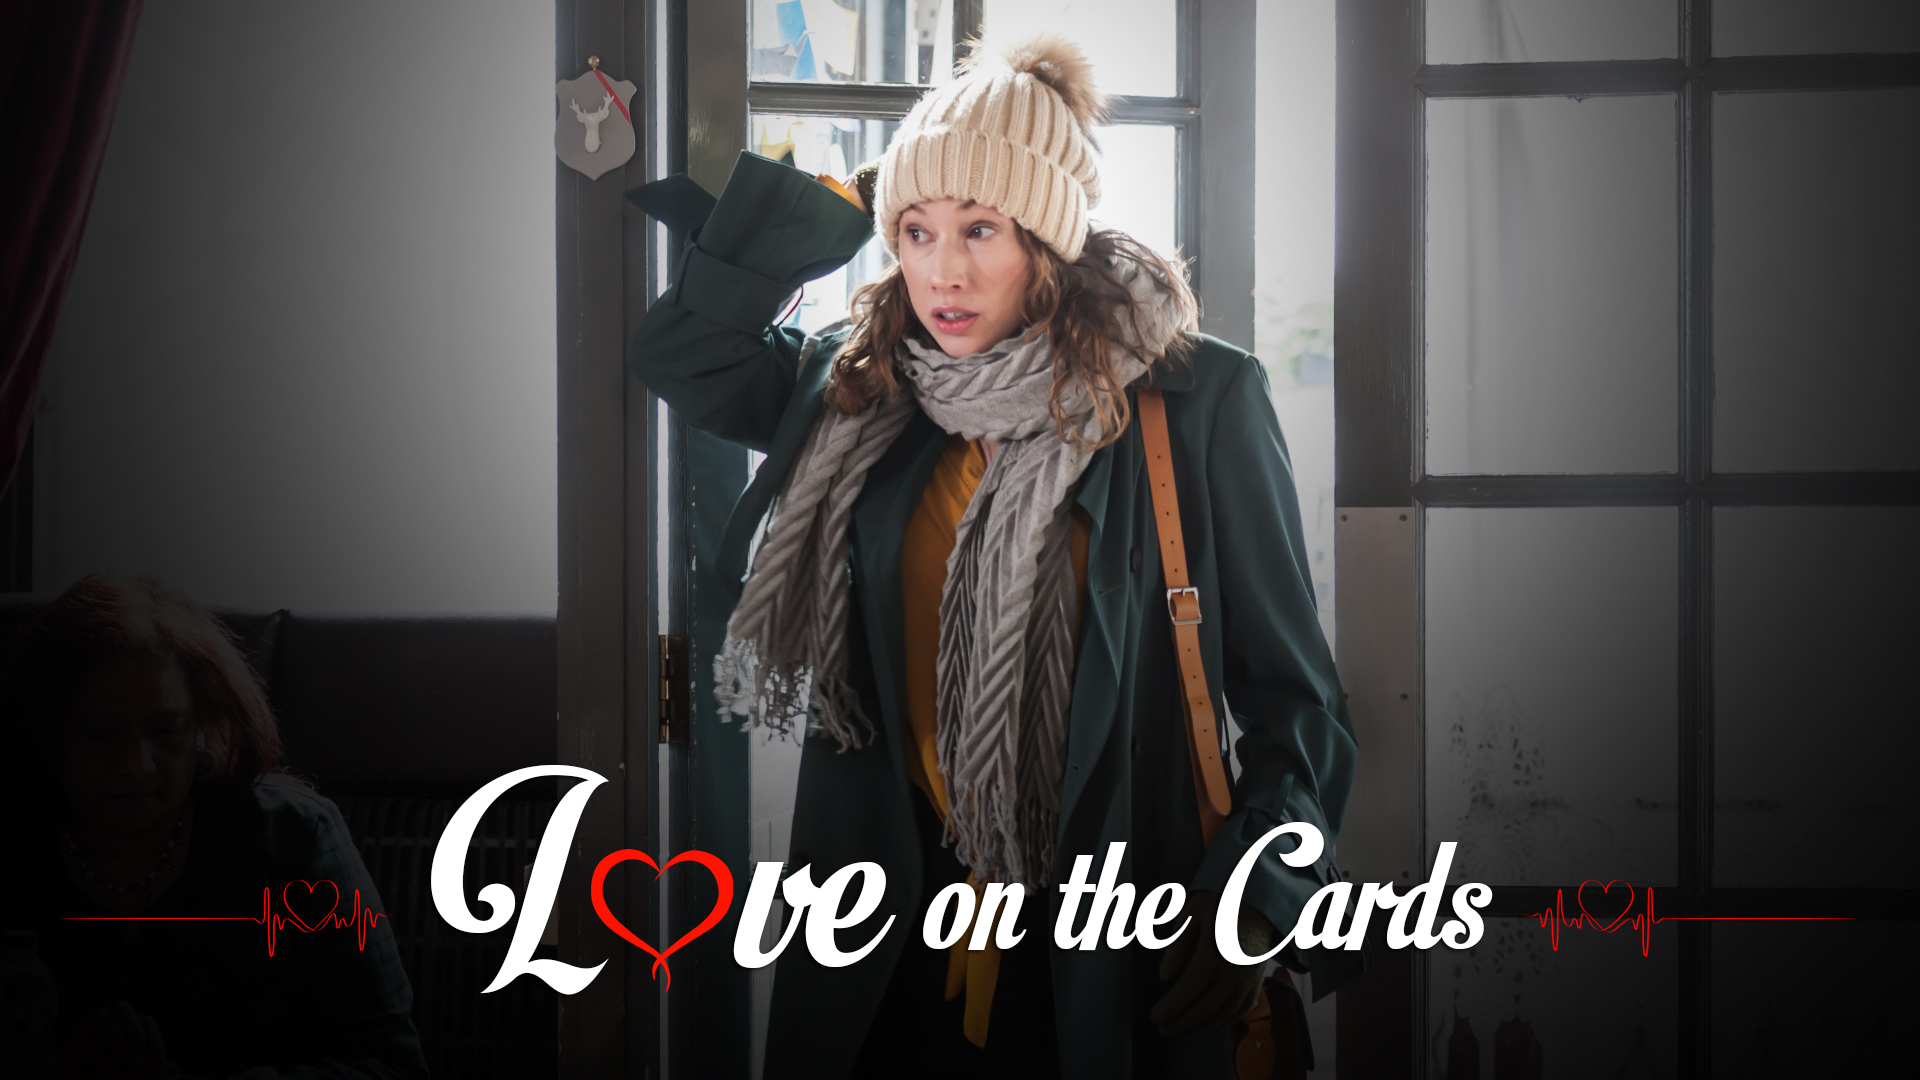 Trailer image 2 1 - Love on the Cards